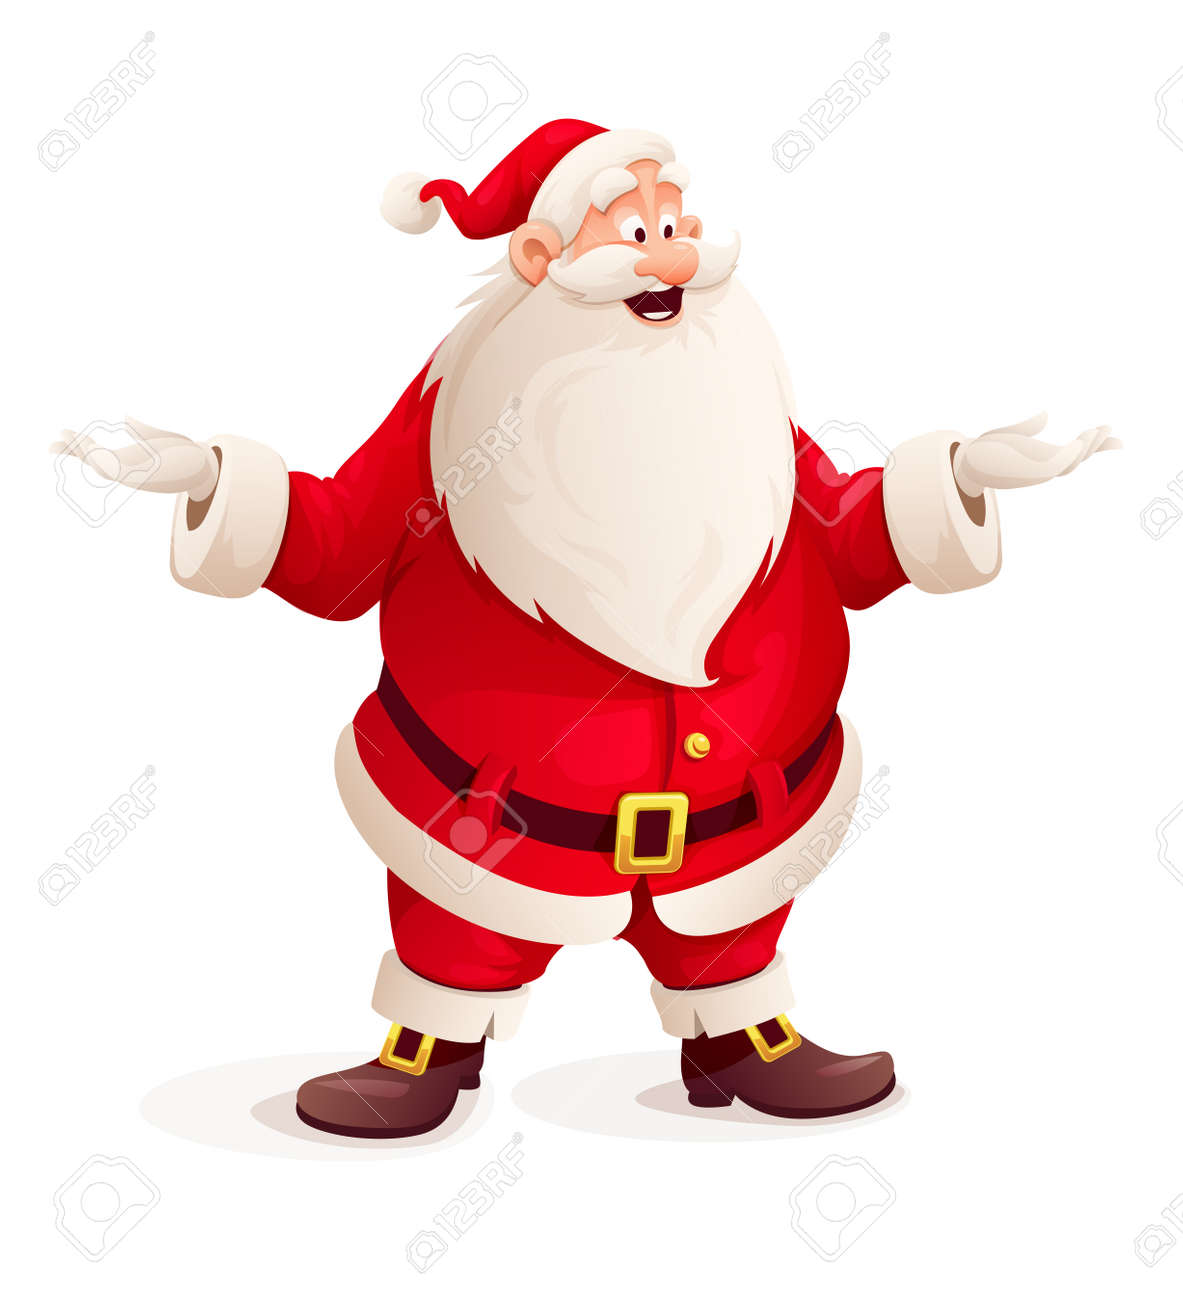 Santa claus throw up hands. Eps10 vector illustration. Isolated on white background Stock Vector - 46598121